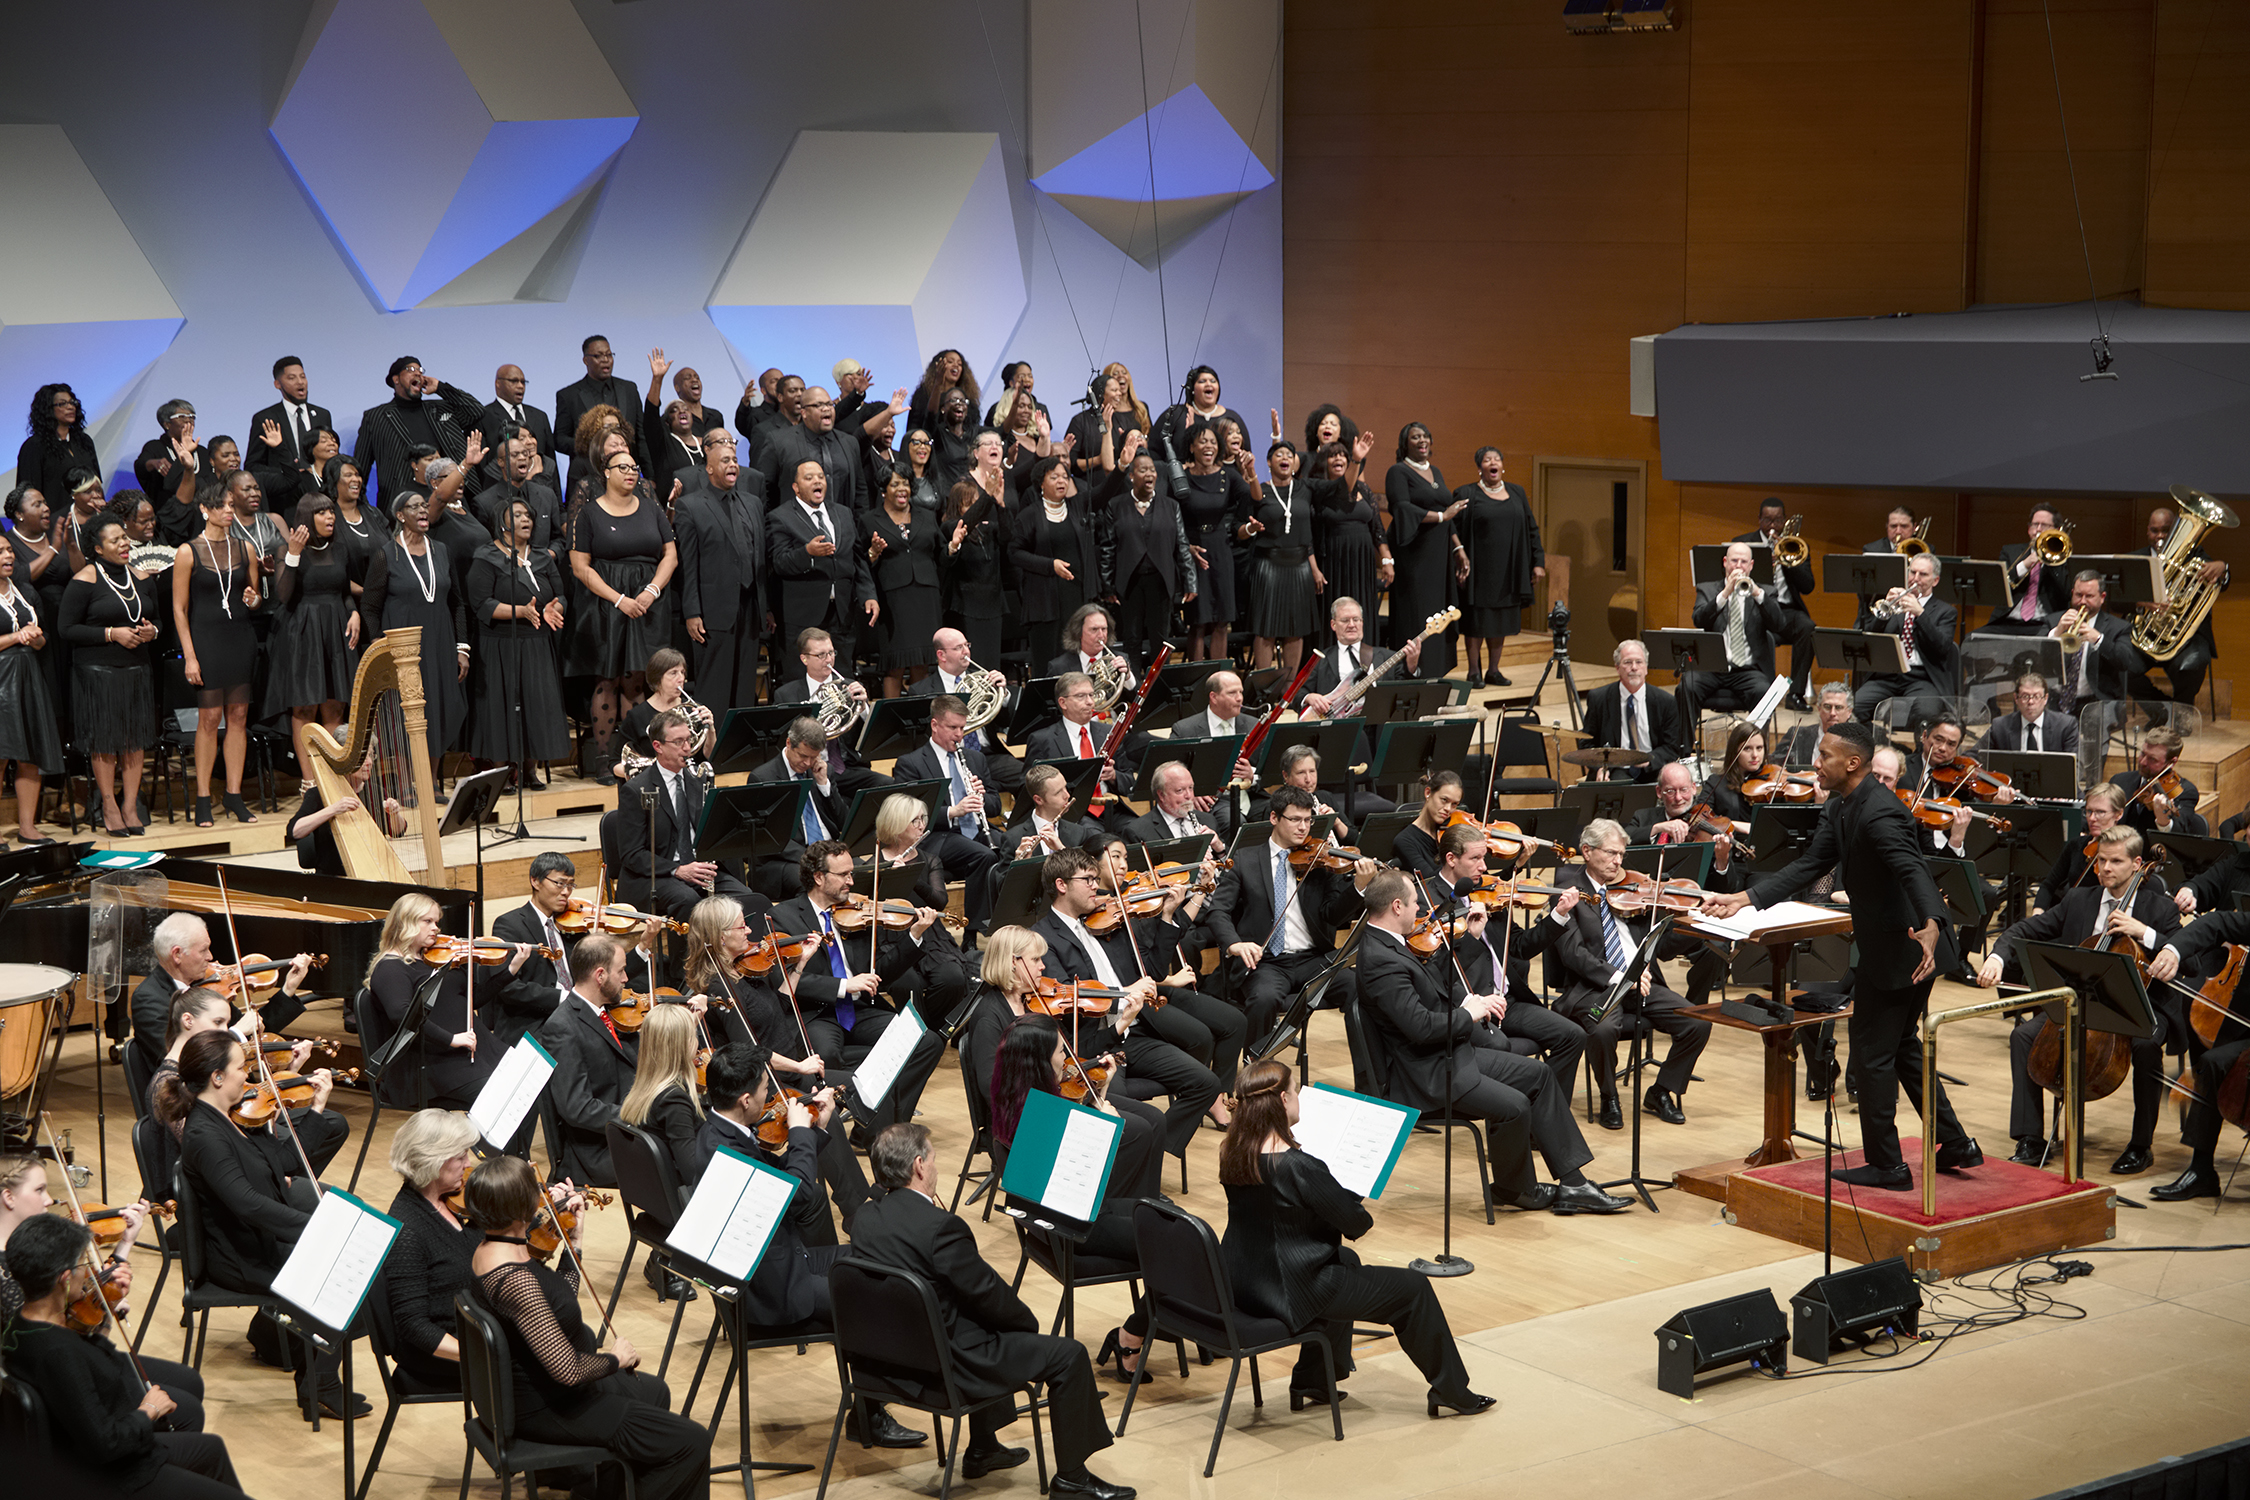 """The Minnesota Orchestra and choirs from Shiloh Temple International Ministries perform Clark's arrangement of """"Praying Spirit"""" in their """"Send Me Hope"""" concert. (2017)"""